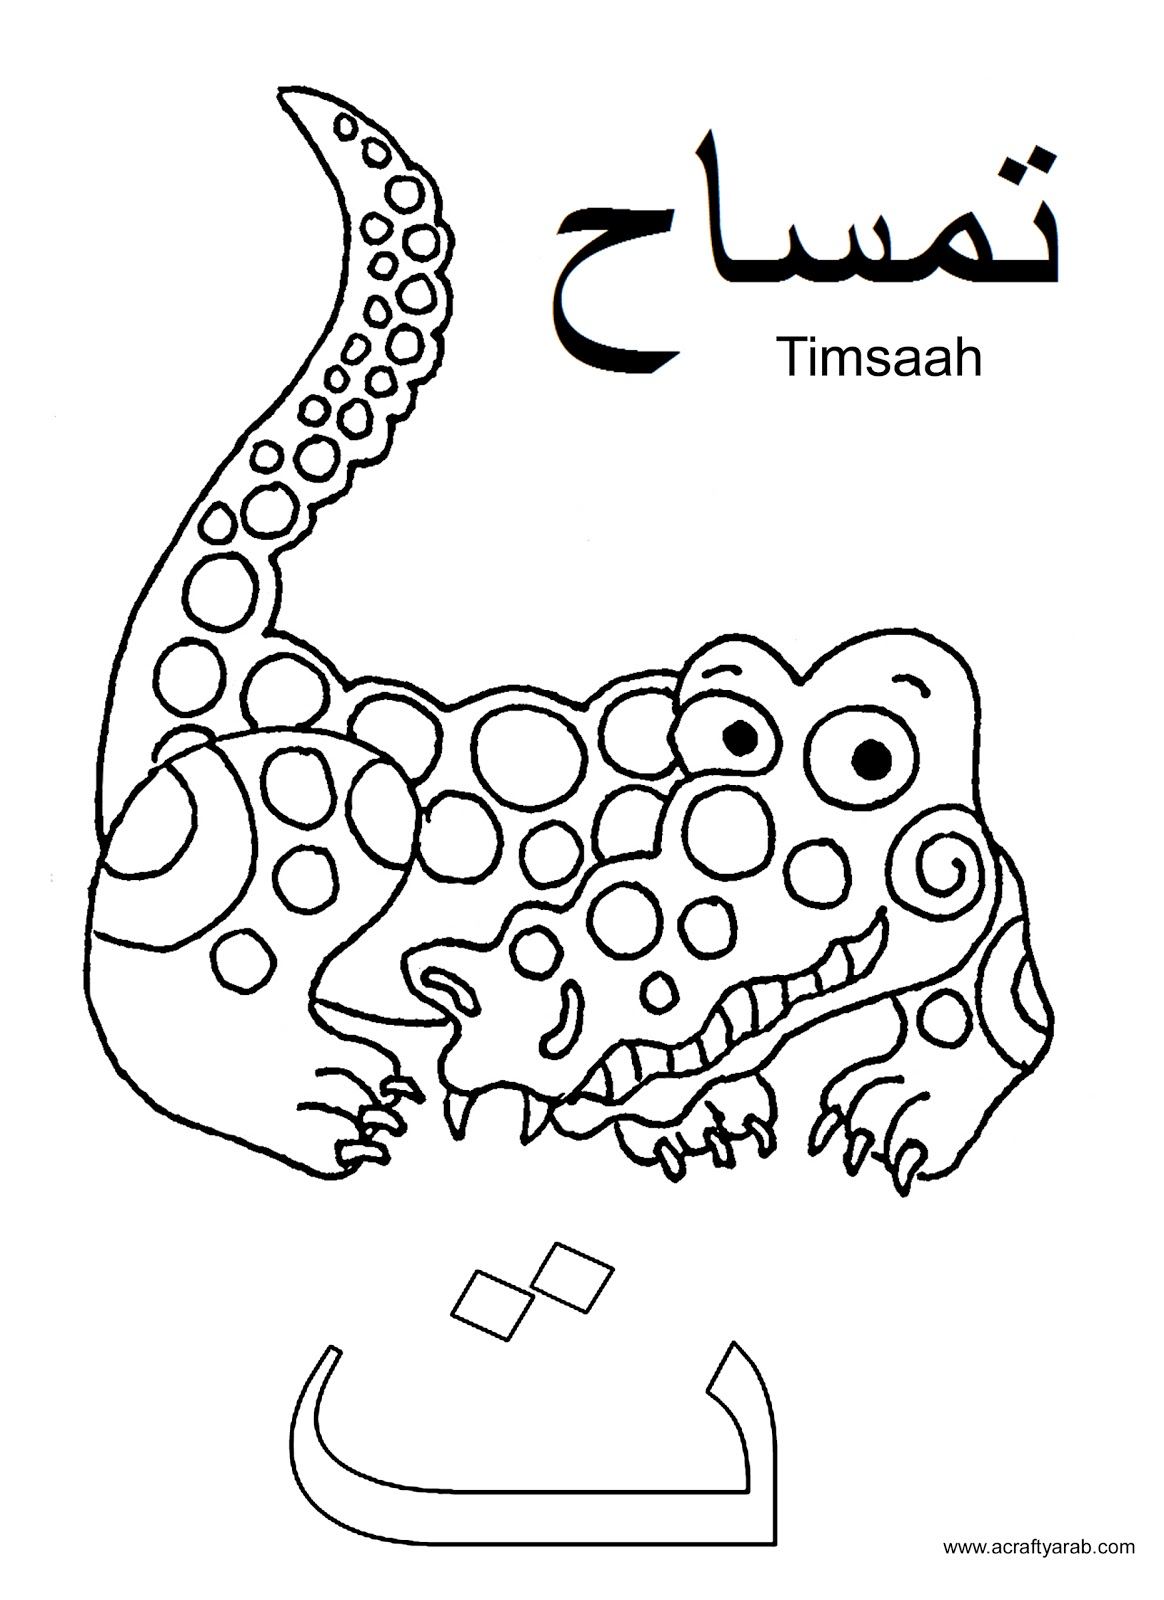 Coloring Pages Arabic Alphabet : A crafty arab arabic alphabet coloring pages ta is for